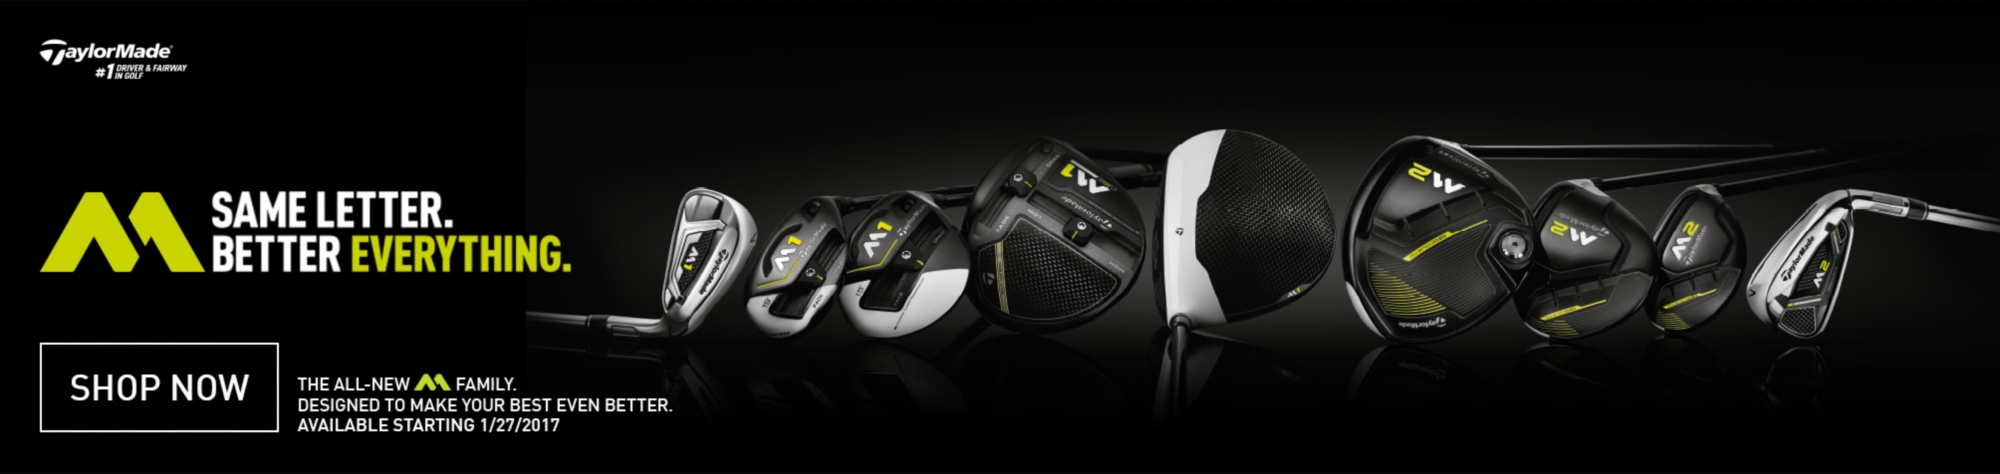 TaylorMade M1M2 Fairways